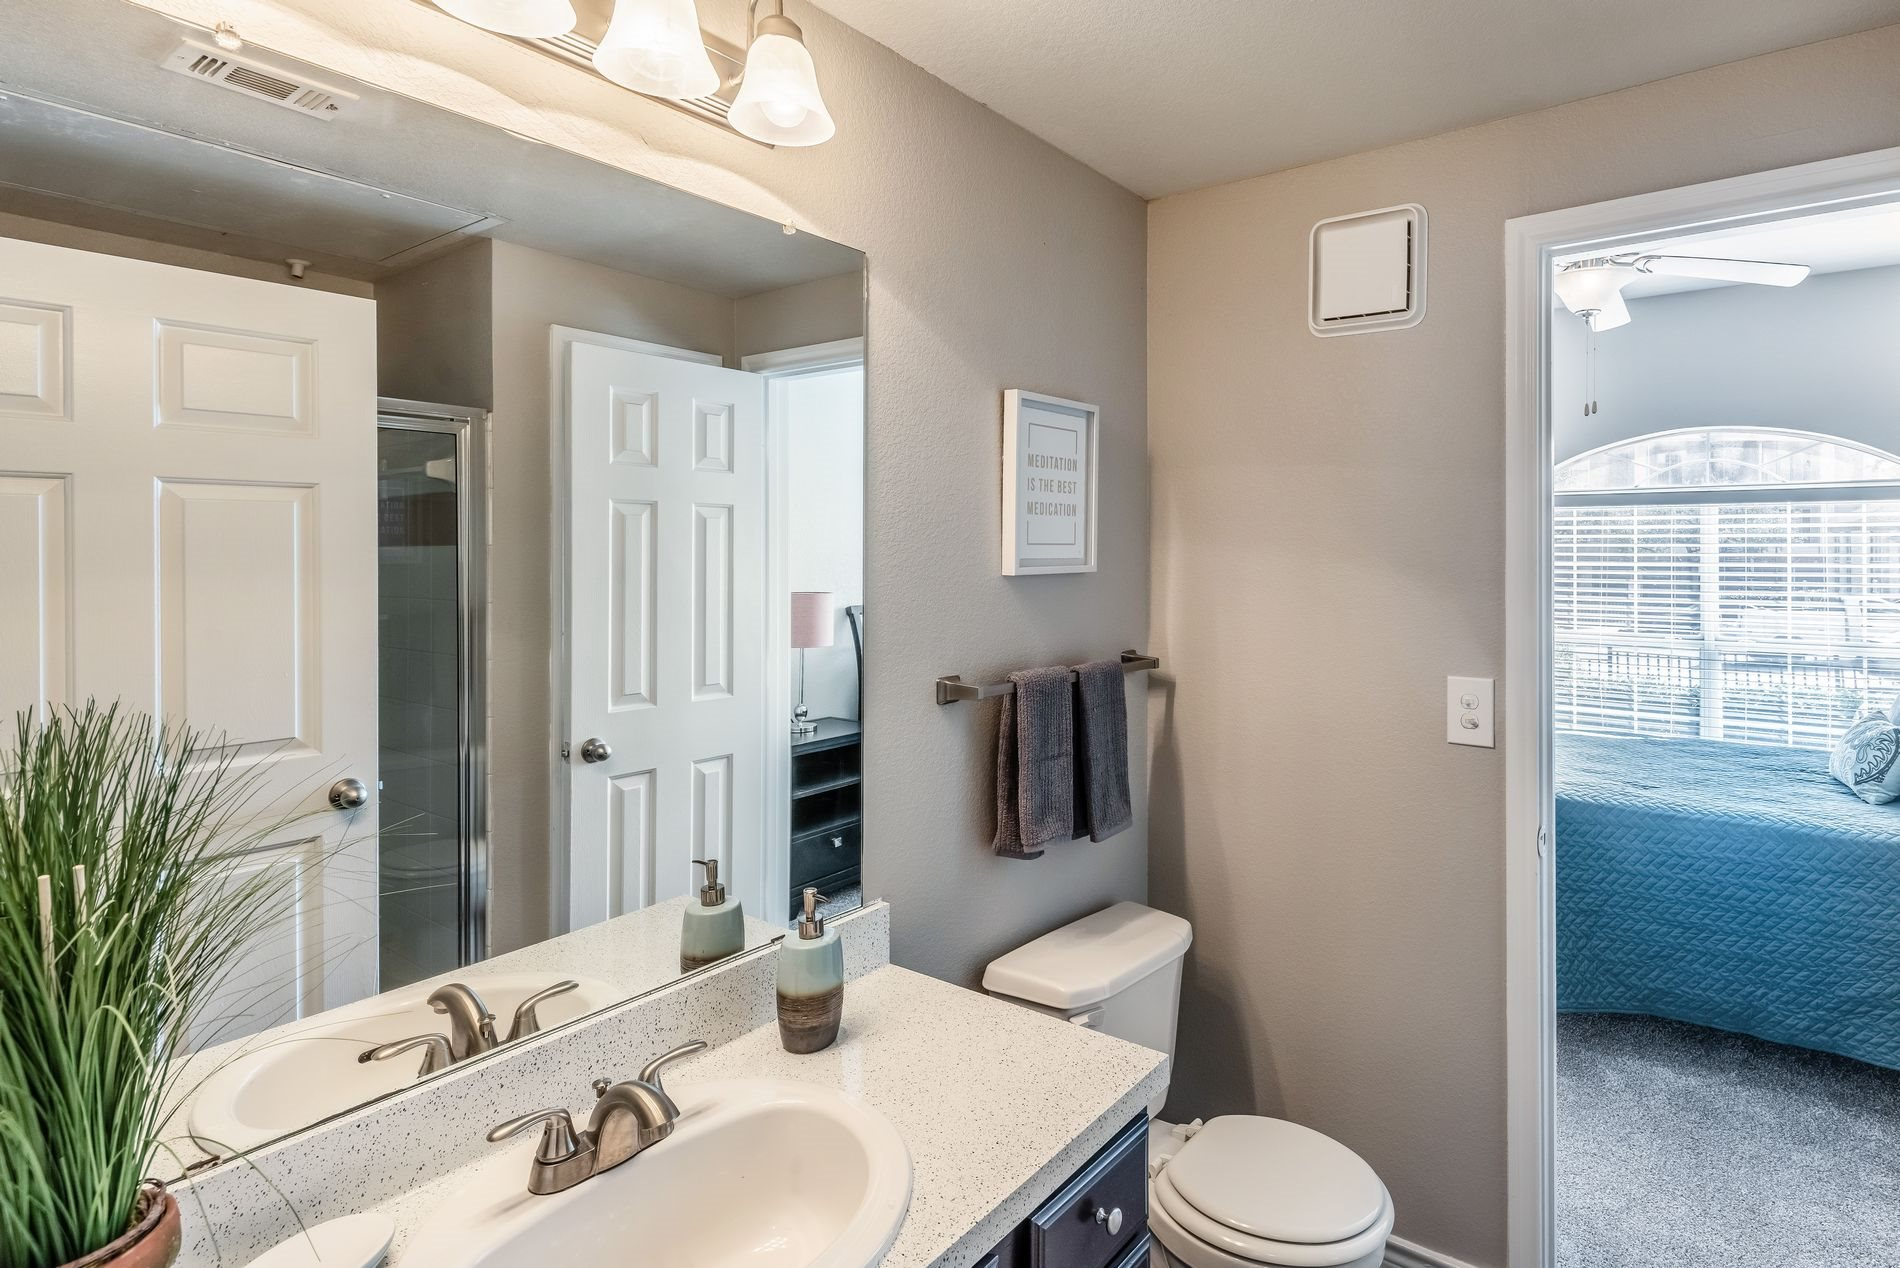 Full Bathrooms at Station 3700 Apartment Homes in Euless, Texas